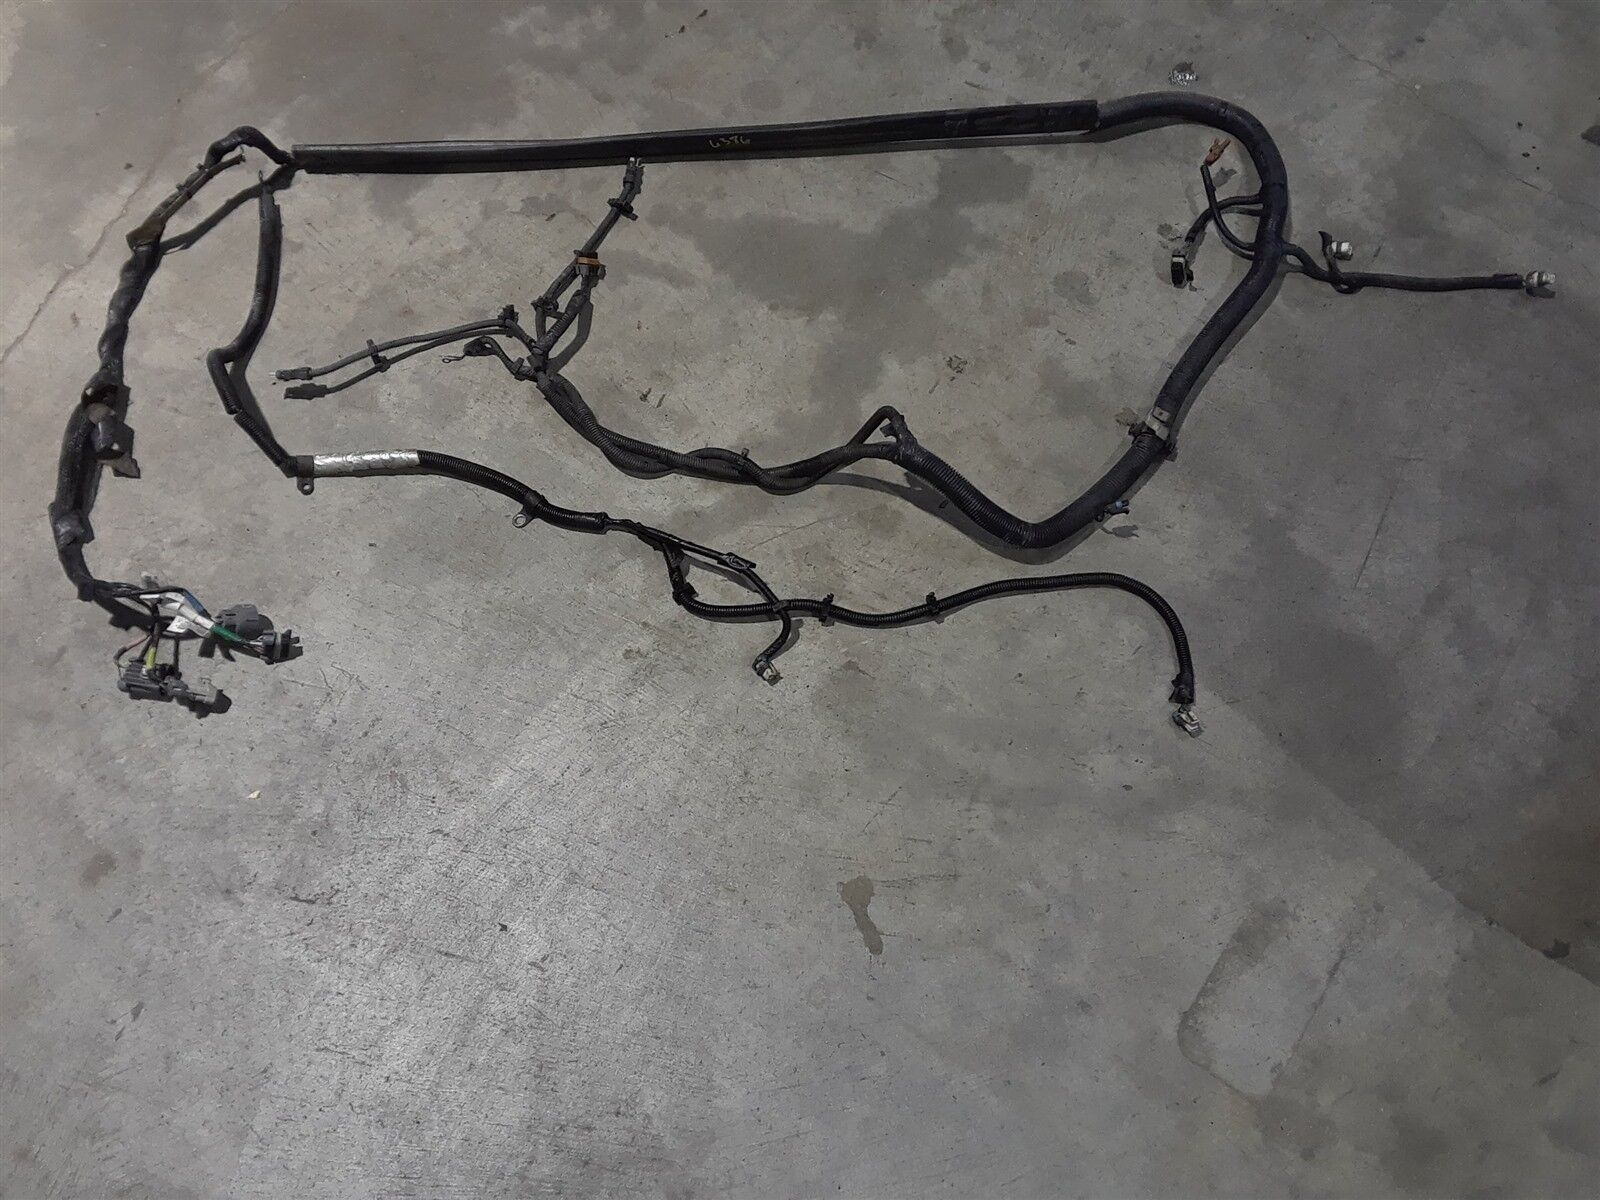 Details about 1999 Corvette C5 Torque Tube Wiring Harness Manual Transmission on tube dimensions, tube assembly, tube terminals, tube fuses,